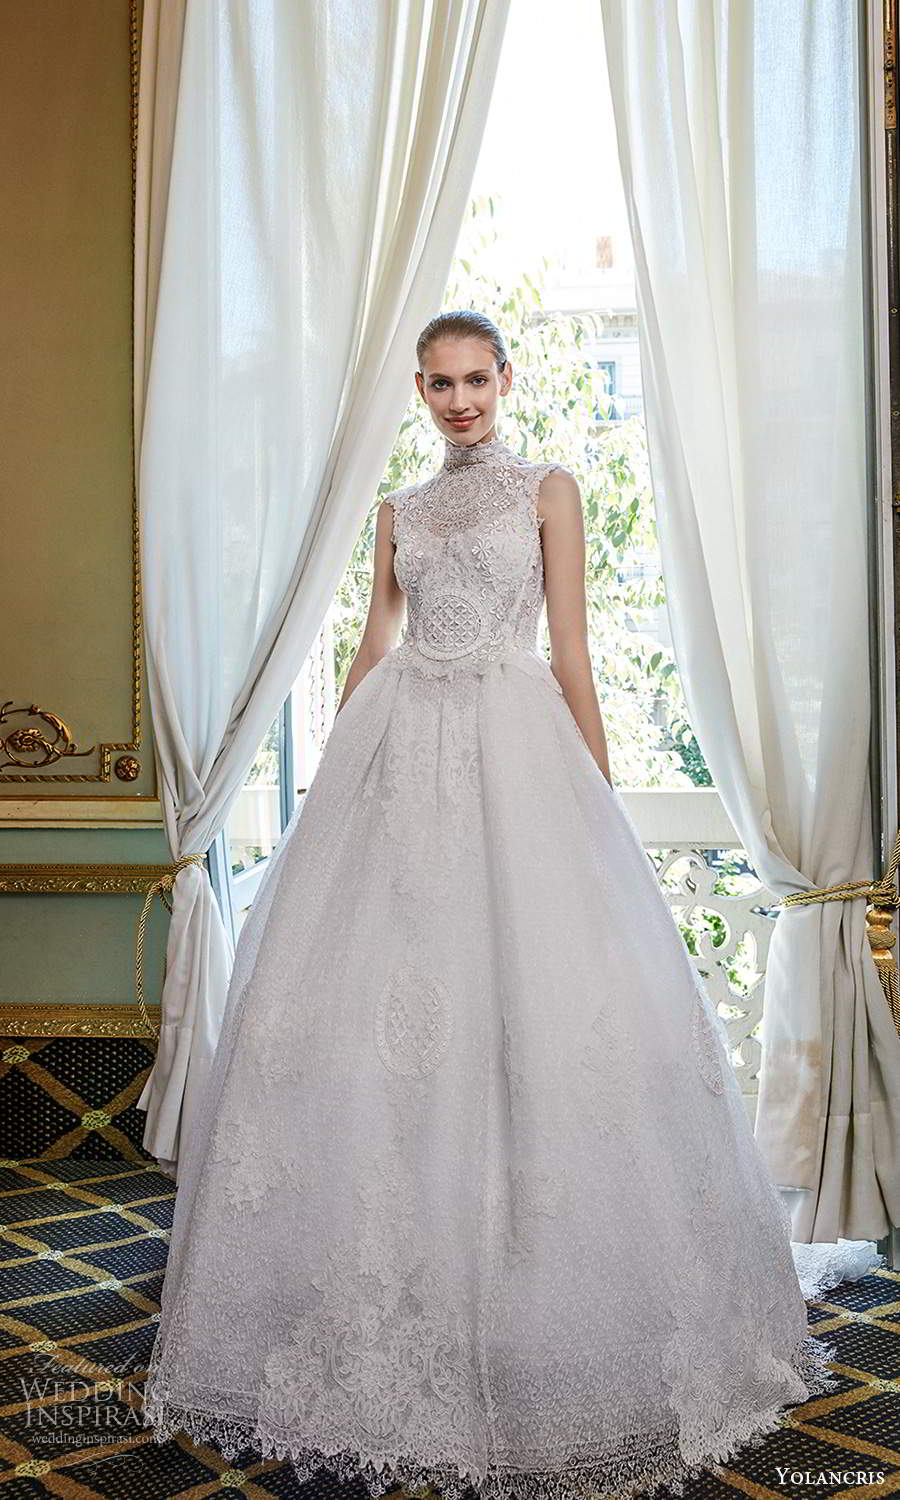 yolancris 2020 bridal couture sleeveless high neckline fully embellished a line ball gown wedding dress chapel train (9) mv